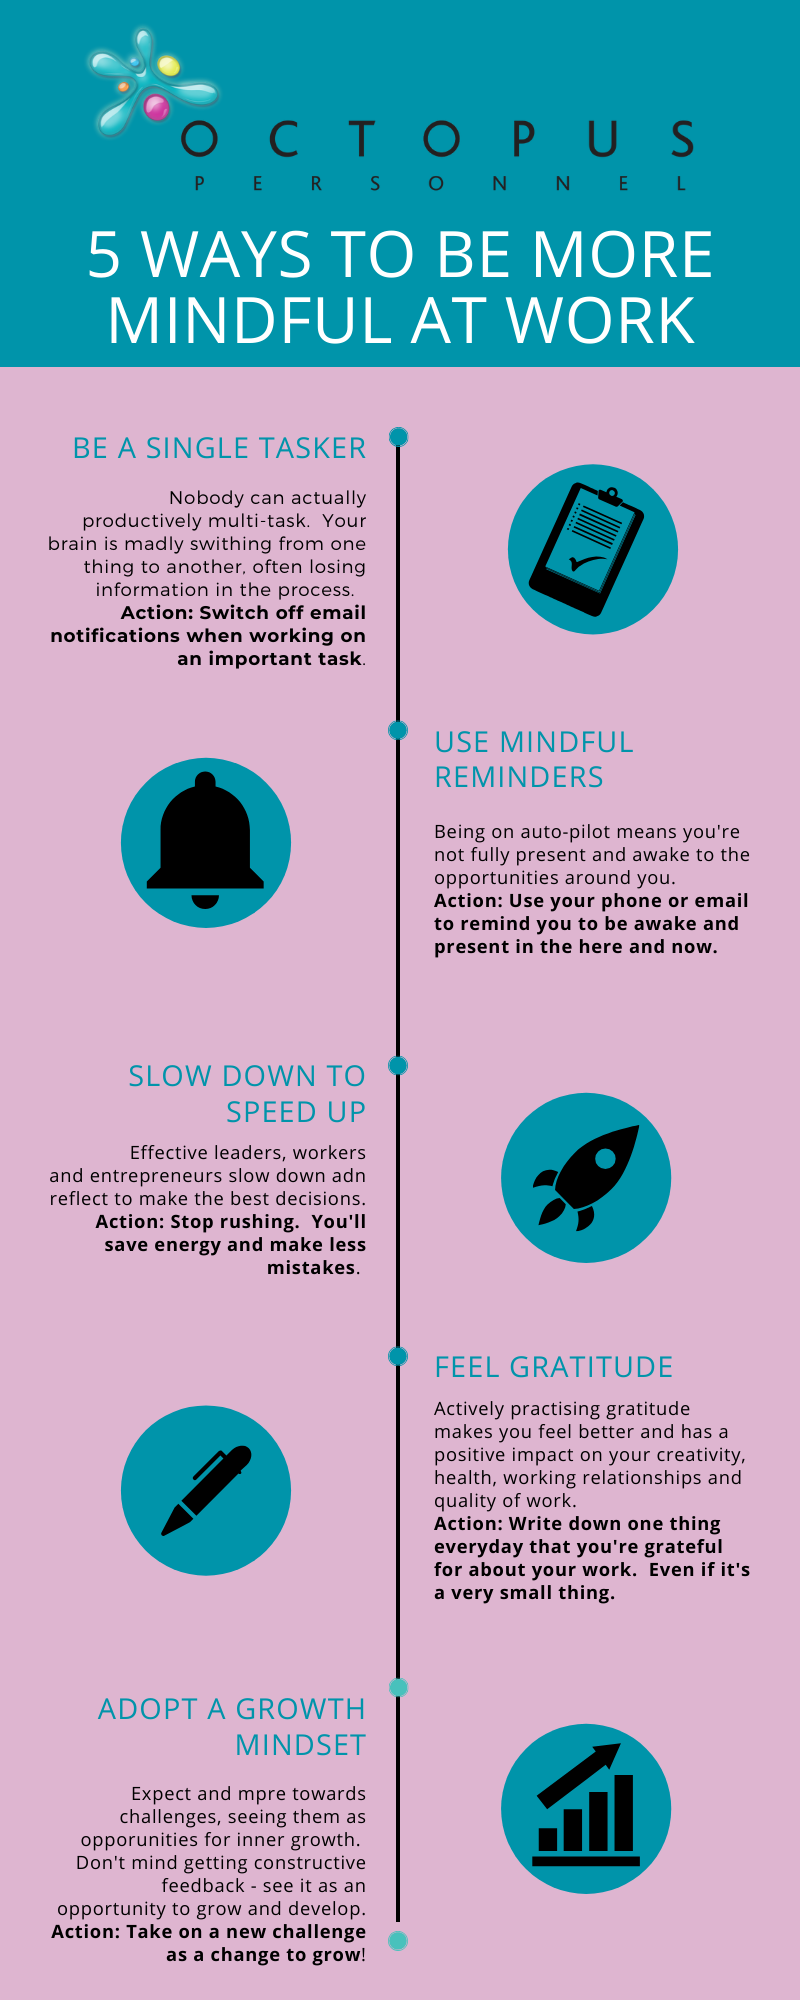 Infographic - 5 Ways to be more mindful - Octopus Personnel Guide to Mindful Working